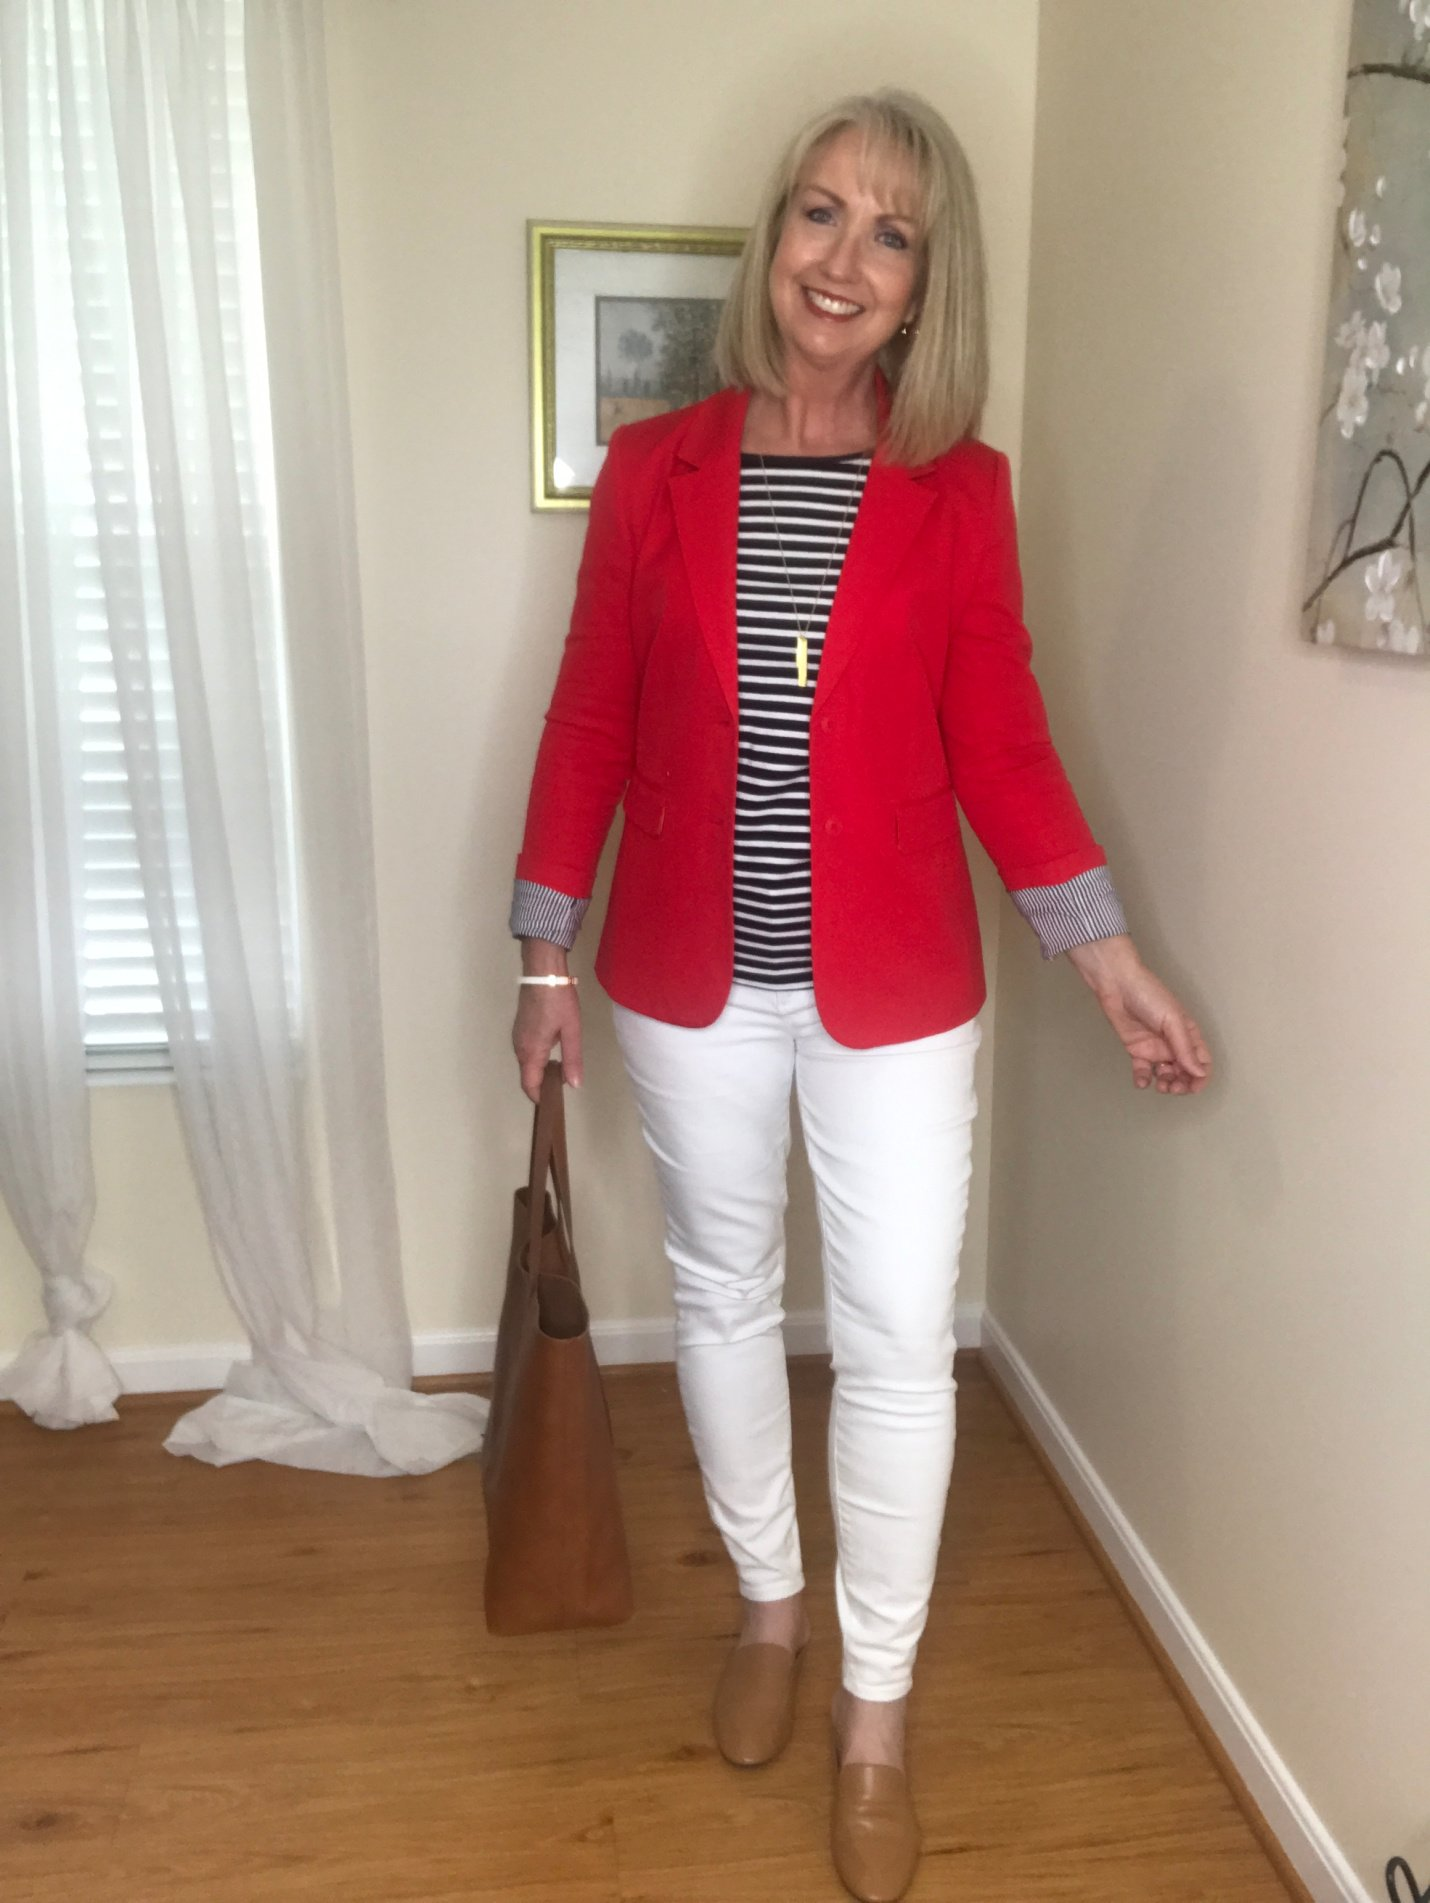 Red Blazer and navy and white striped top